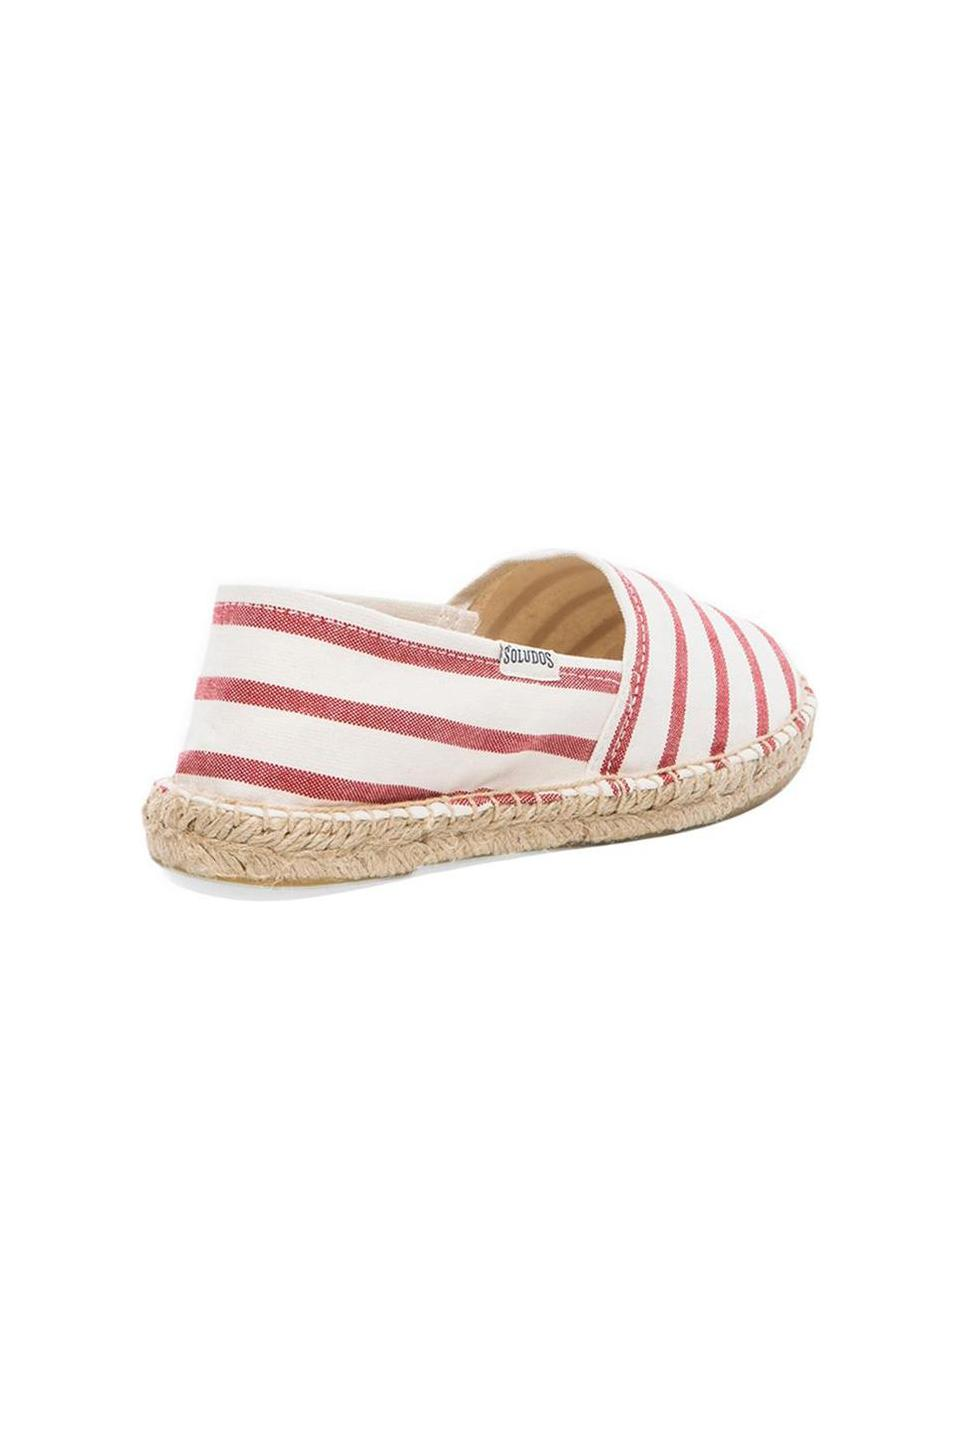 Soludos Classic Stripe Flat in White & Red